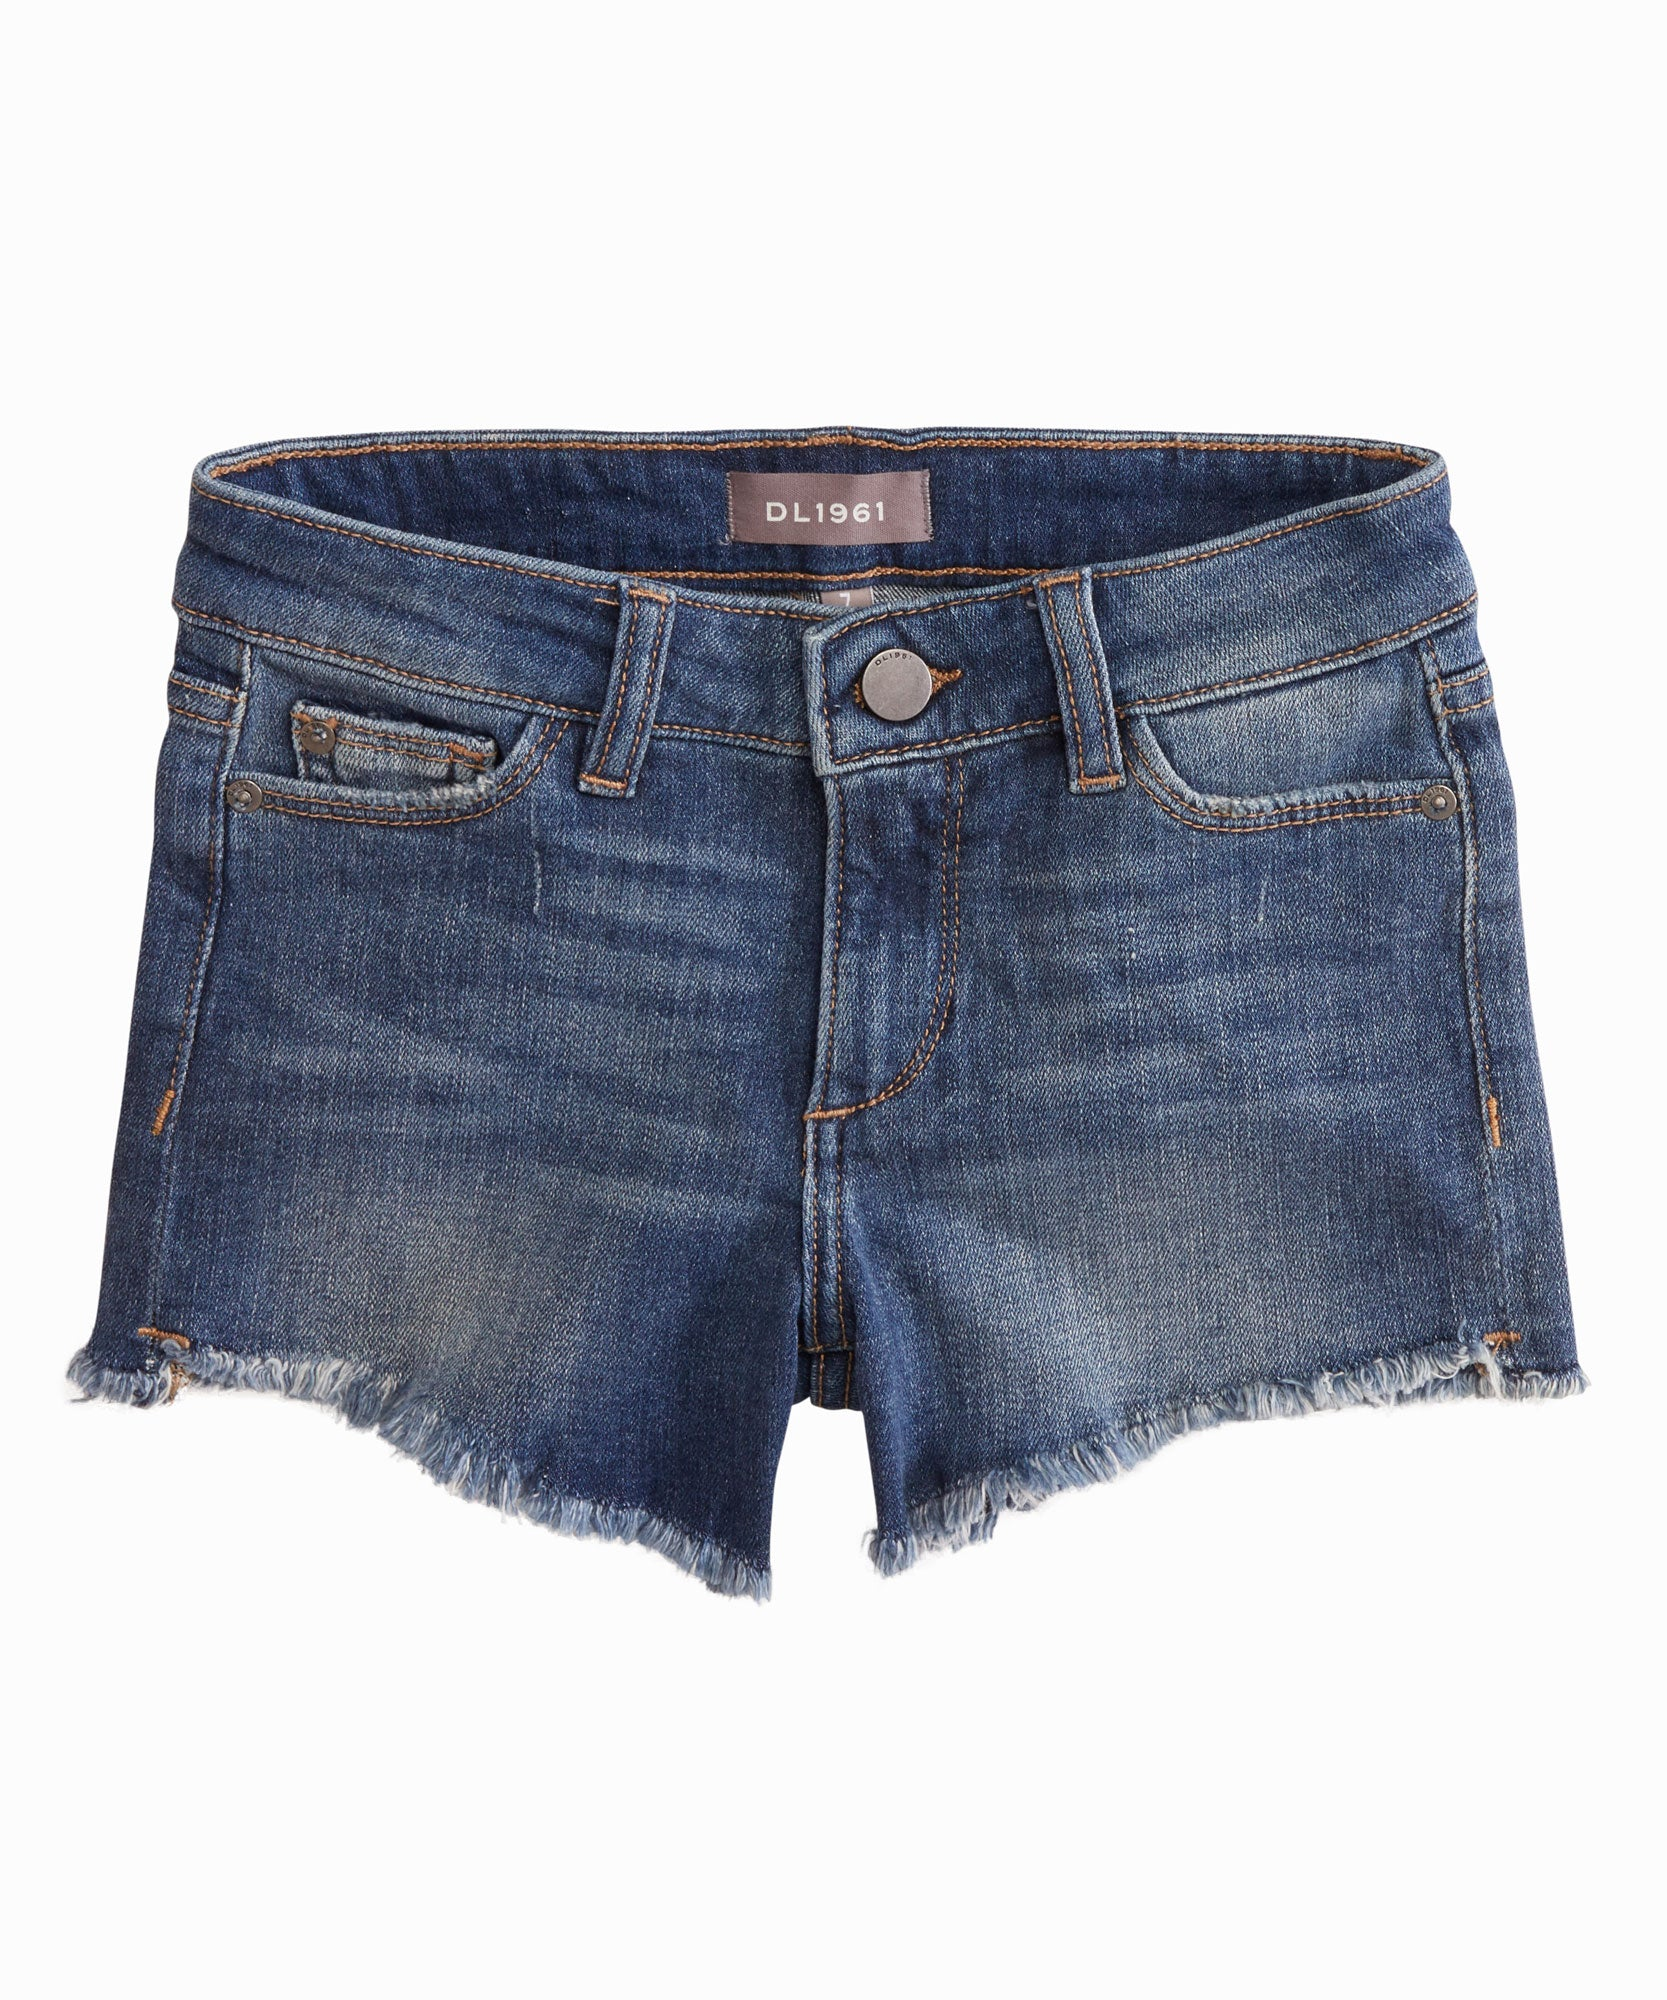 Add these essential denim cutoffs to your little trendsetters wardrobe as a Summertime staple. 5-pocket short with frayed hem.